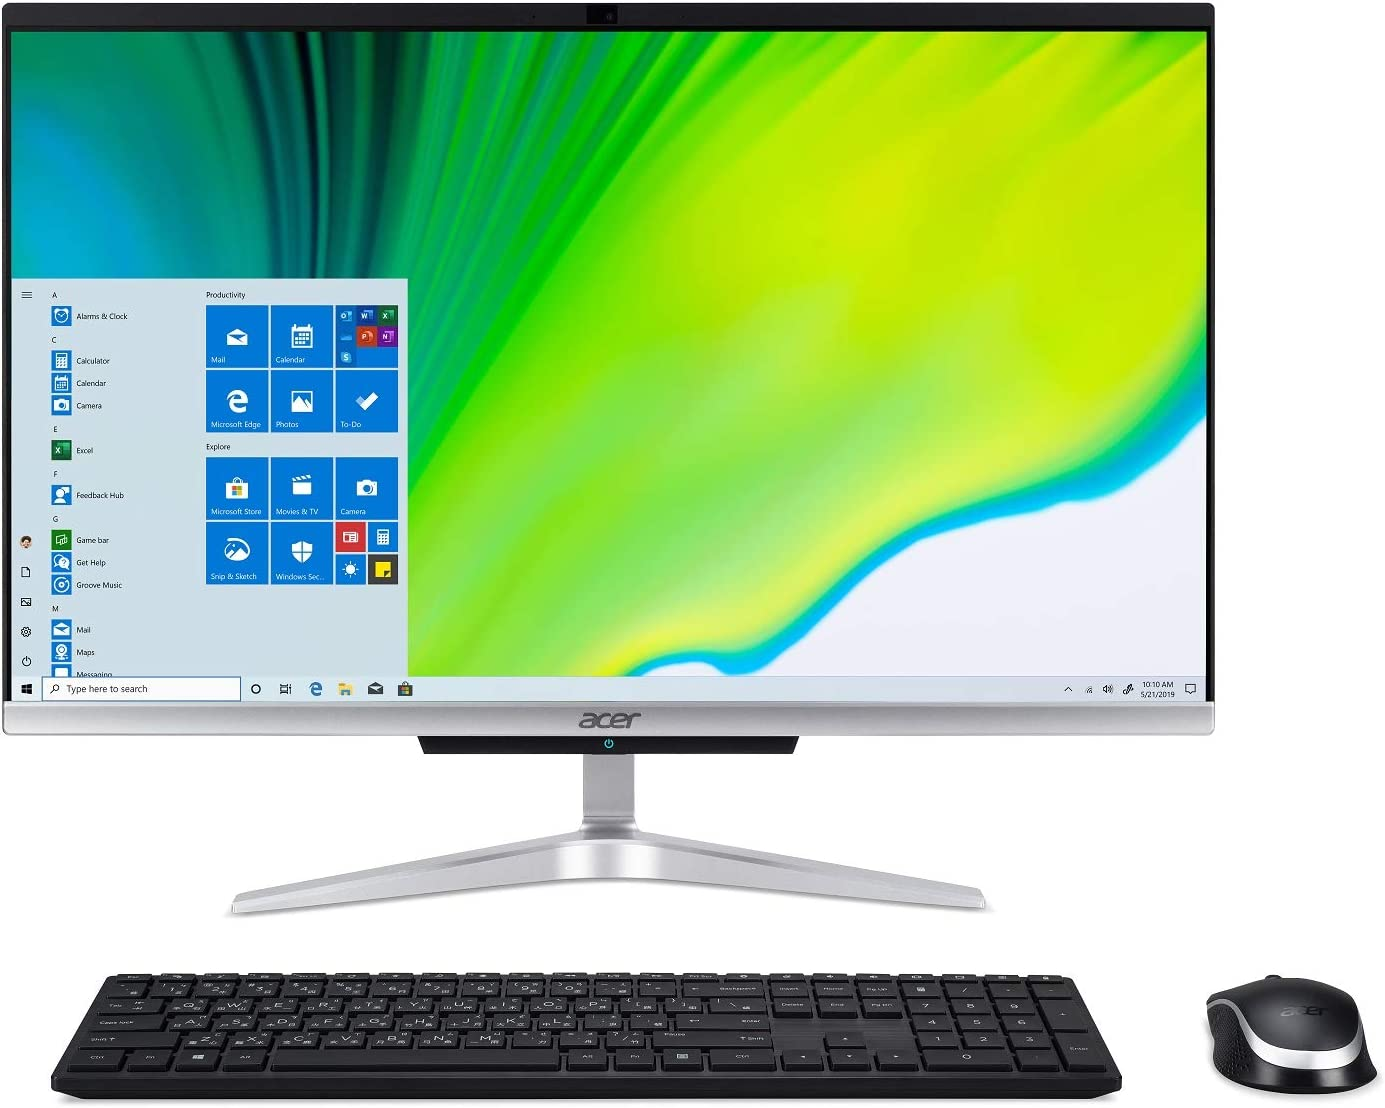 "Acer Aspire C24-963-UA91 AIO Desktop, 23.8"" Full HD Display, 10th Gen Intel Core i3-1005G1, 8GB DDR4, 512GB NVMe M.2 SSD, 802.11ac WiFi 5, Wireless Keyboard and Mouse, Windows 10 Home"